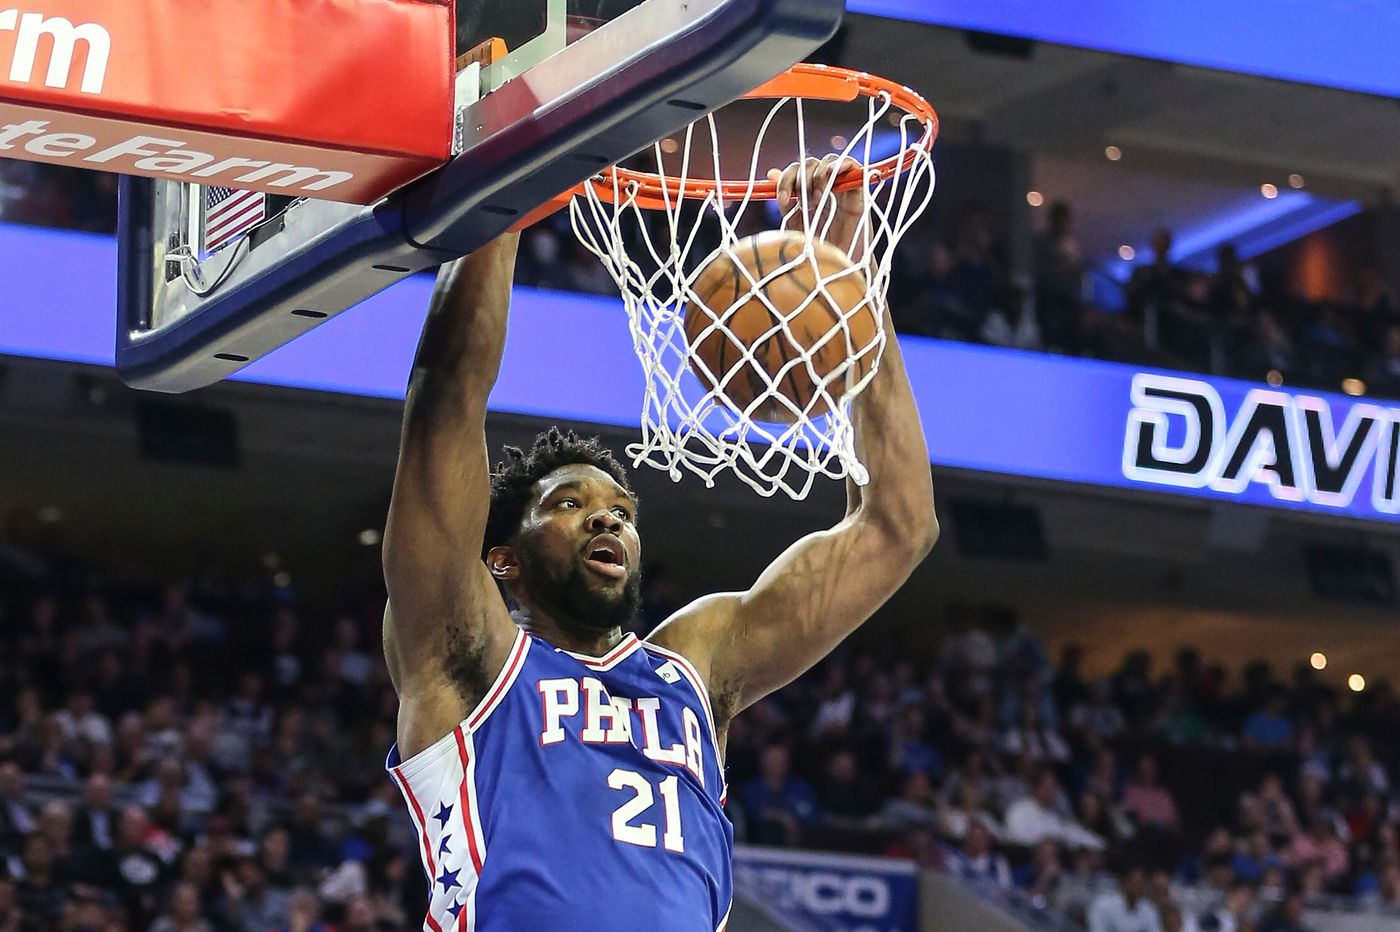 Sixers' 2019-20 schedule: Open with Celtics; Kawhi Leonard visits in February